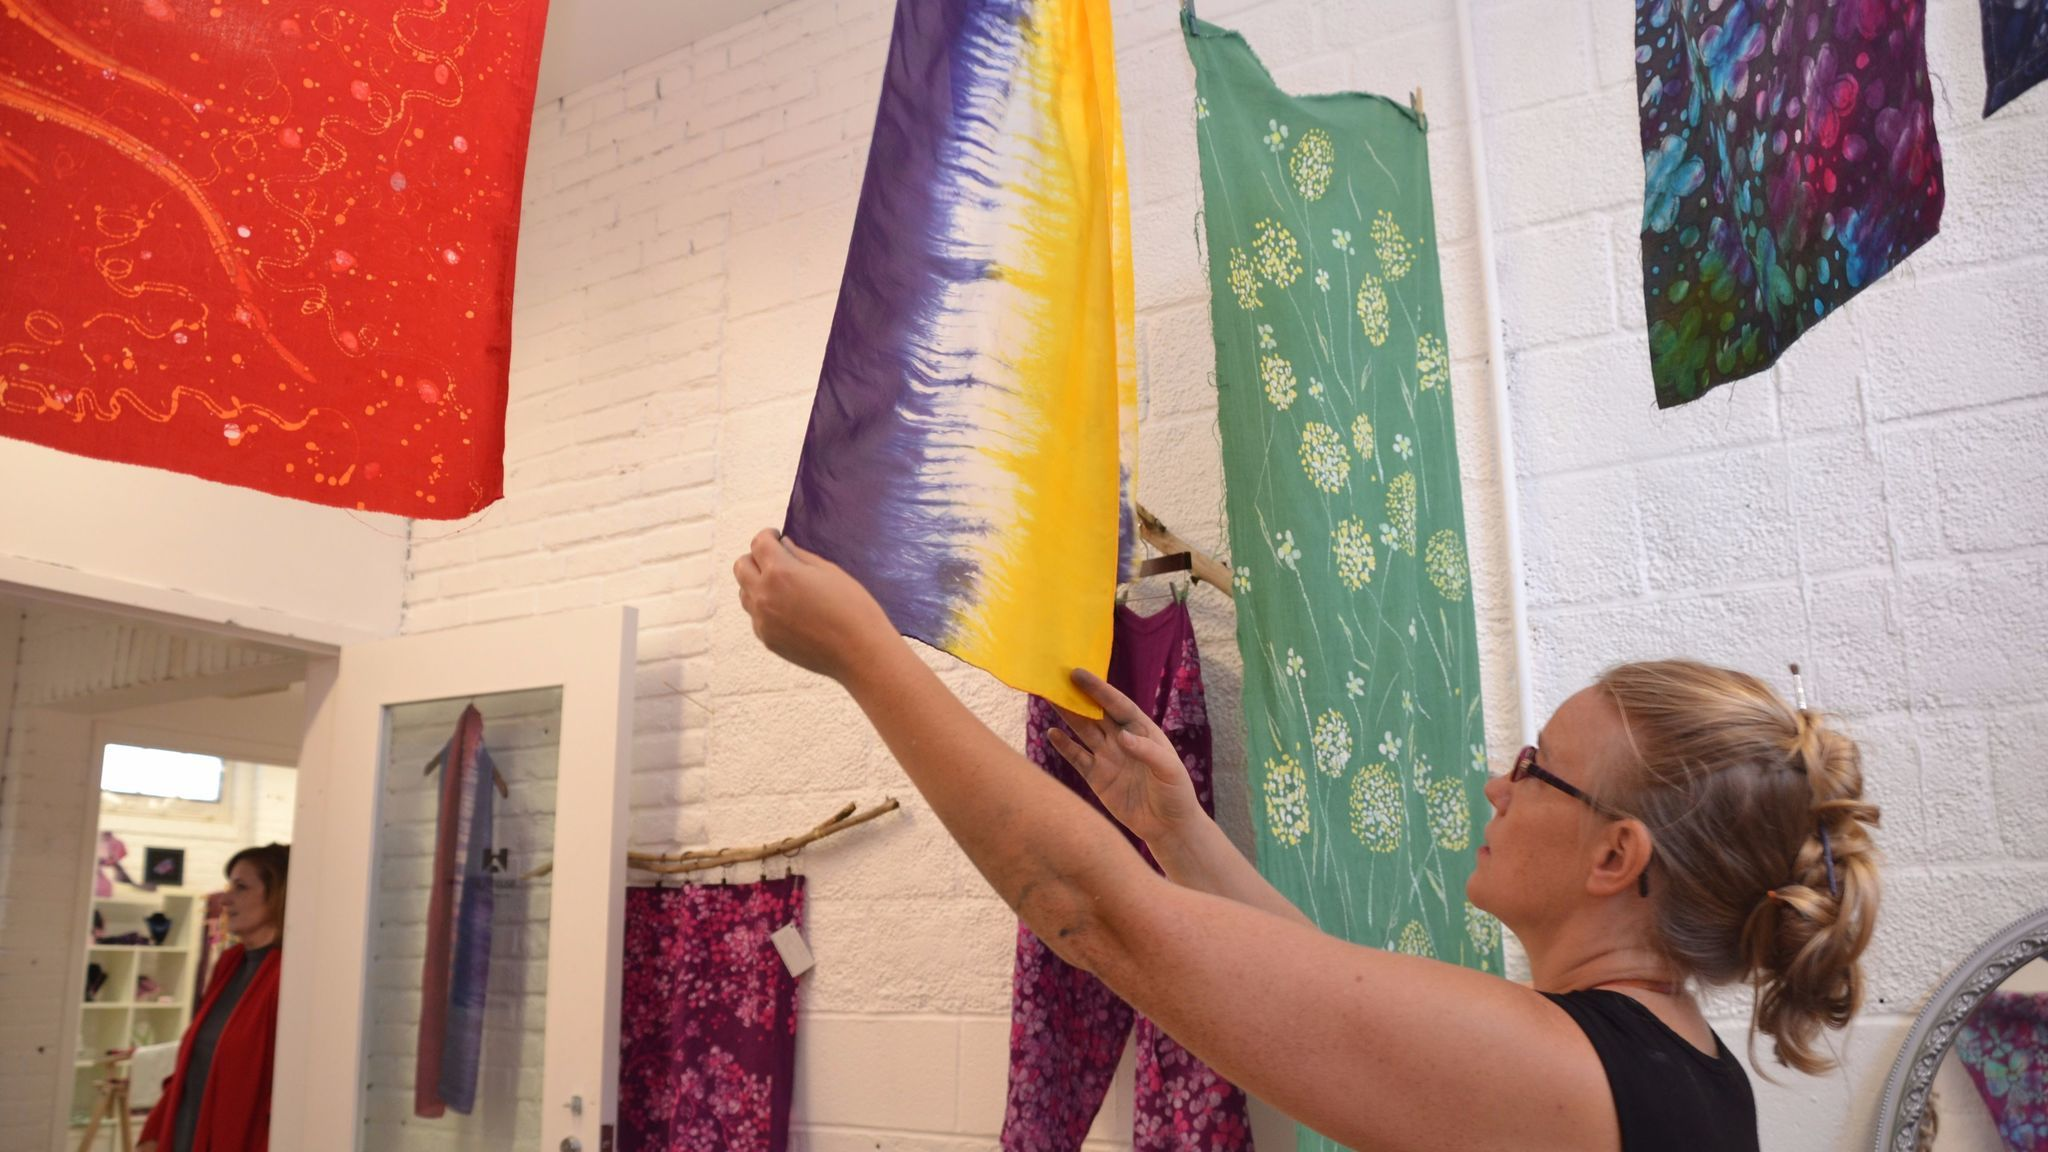 Cheryl VanderMolen Neway, an artist at the Workhouse Arts Center,  looks at a scarf she created using the colors of the National Woman's Party.